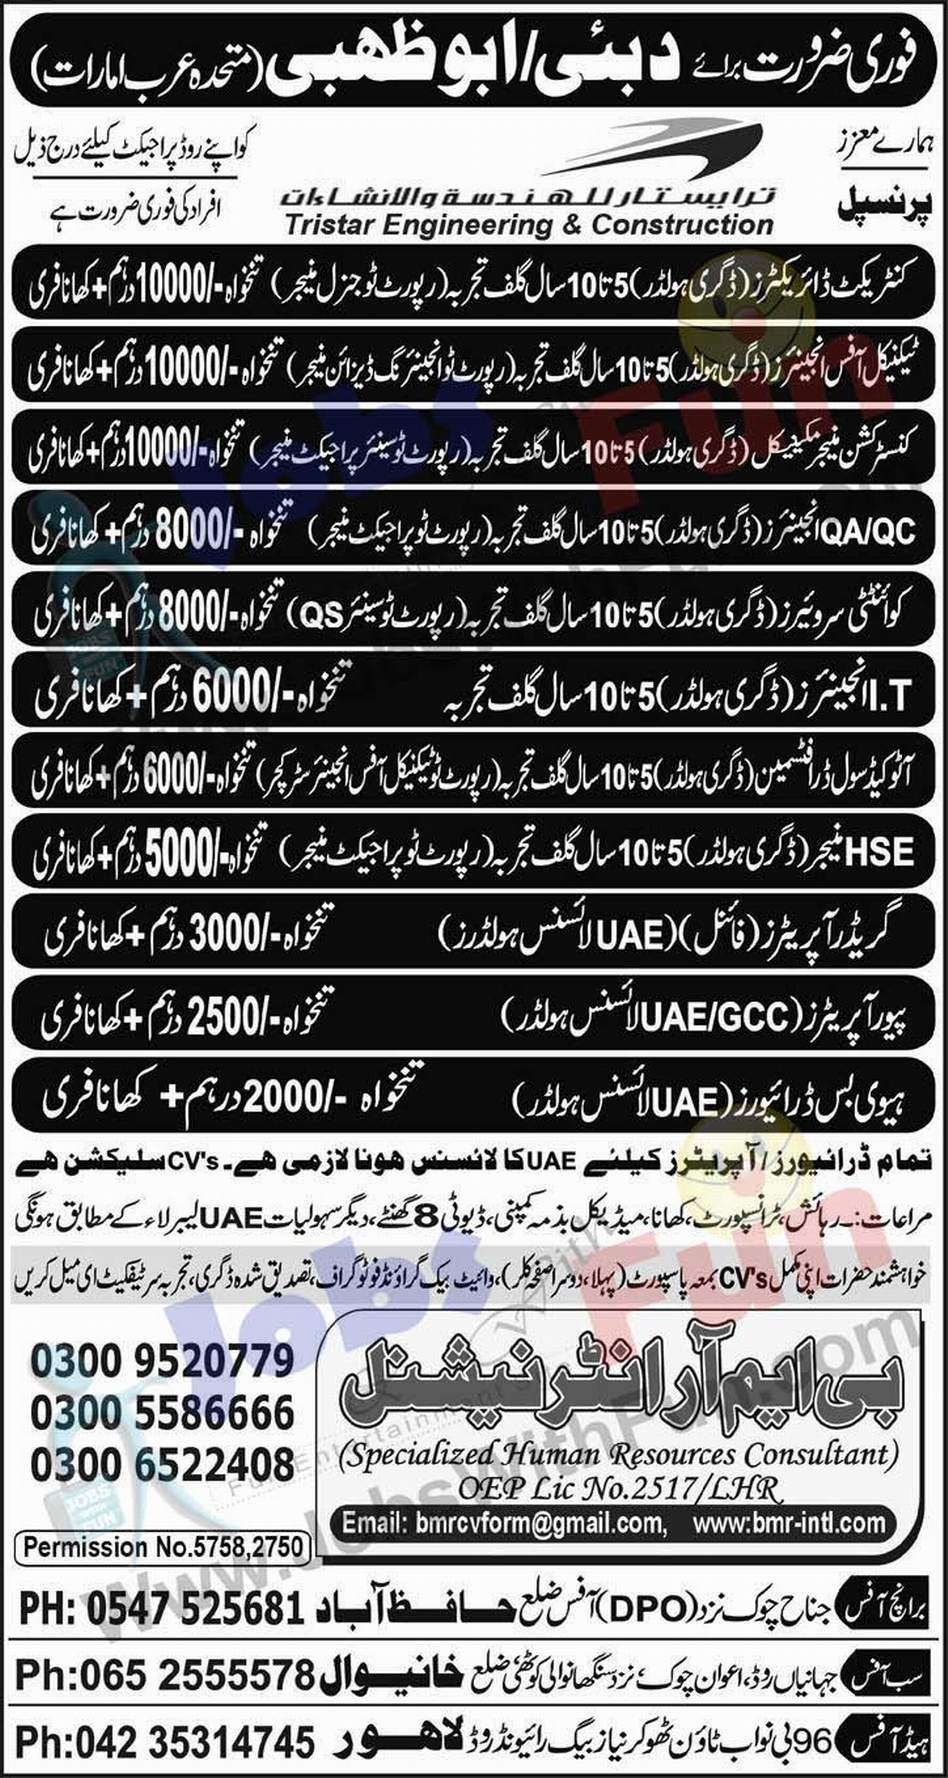 urgent jobs in tristar engineering and construction company dubai advertisments